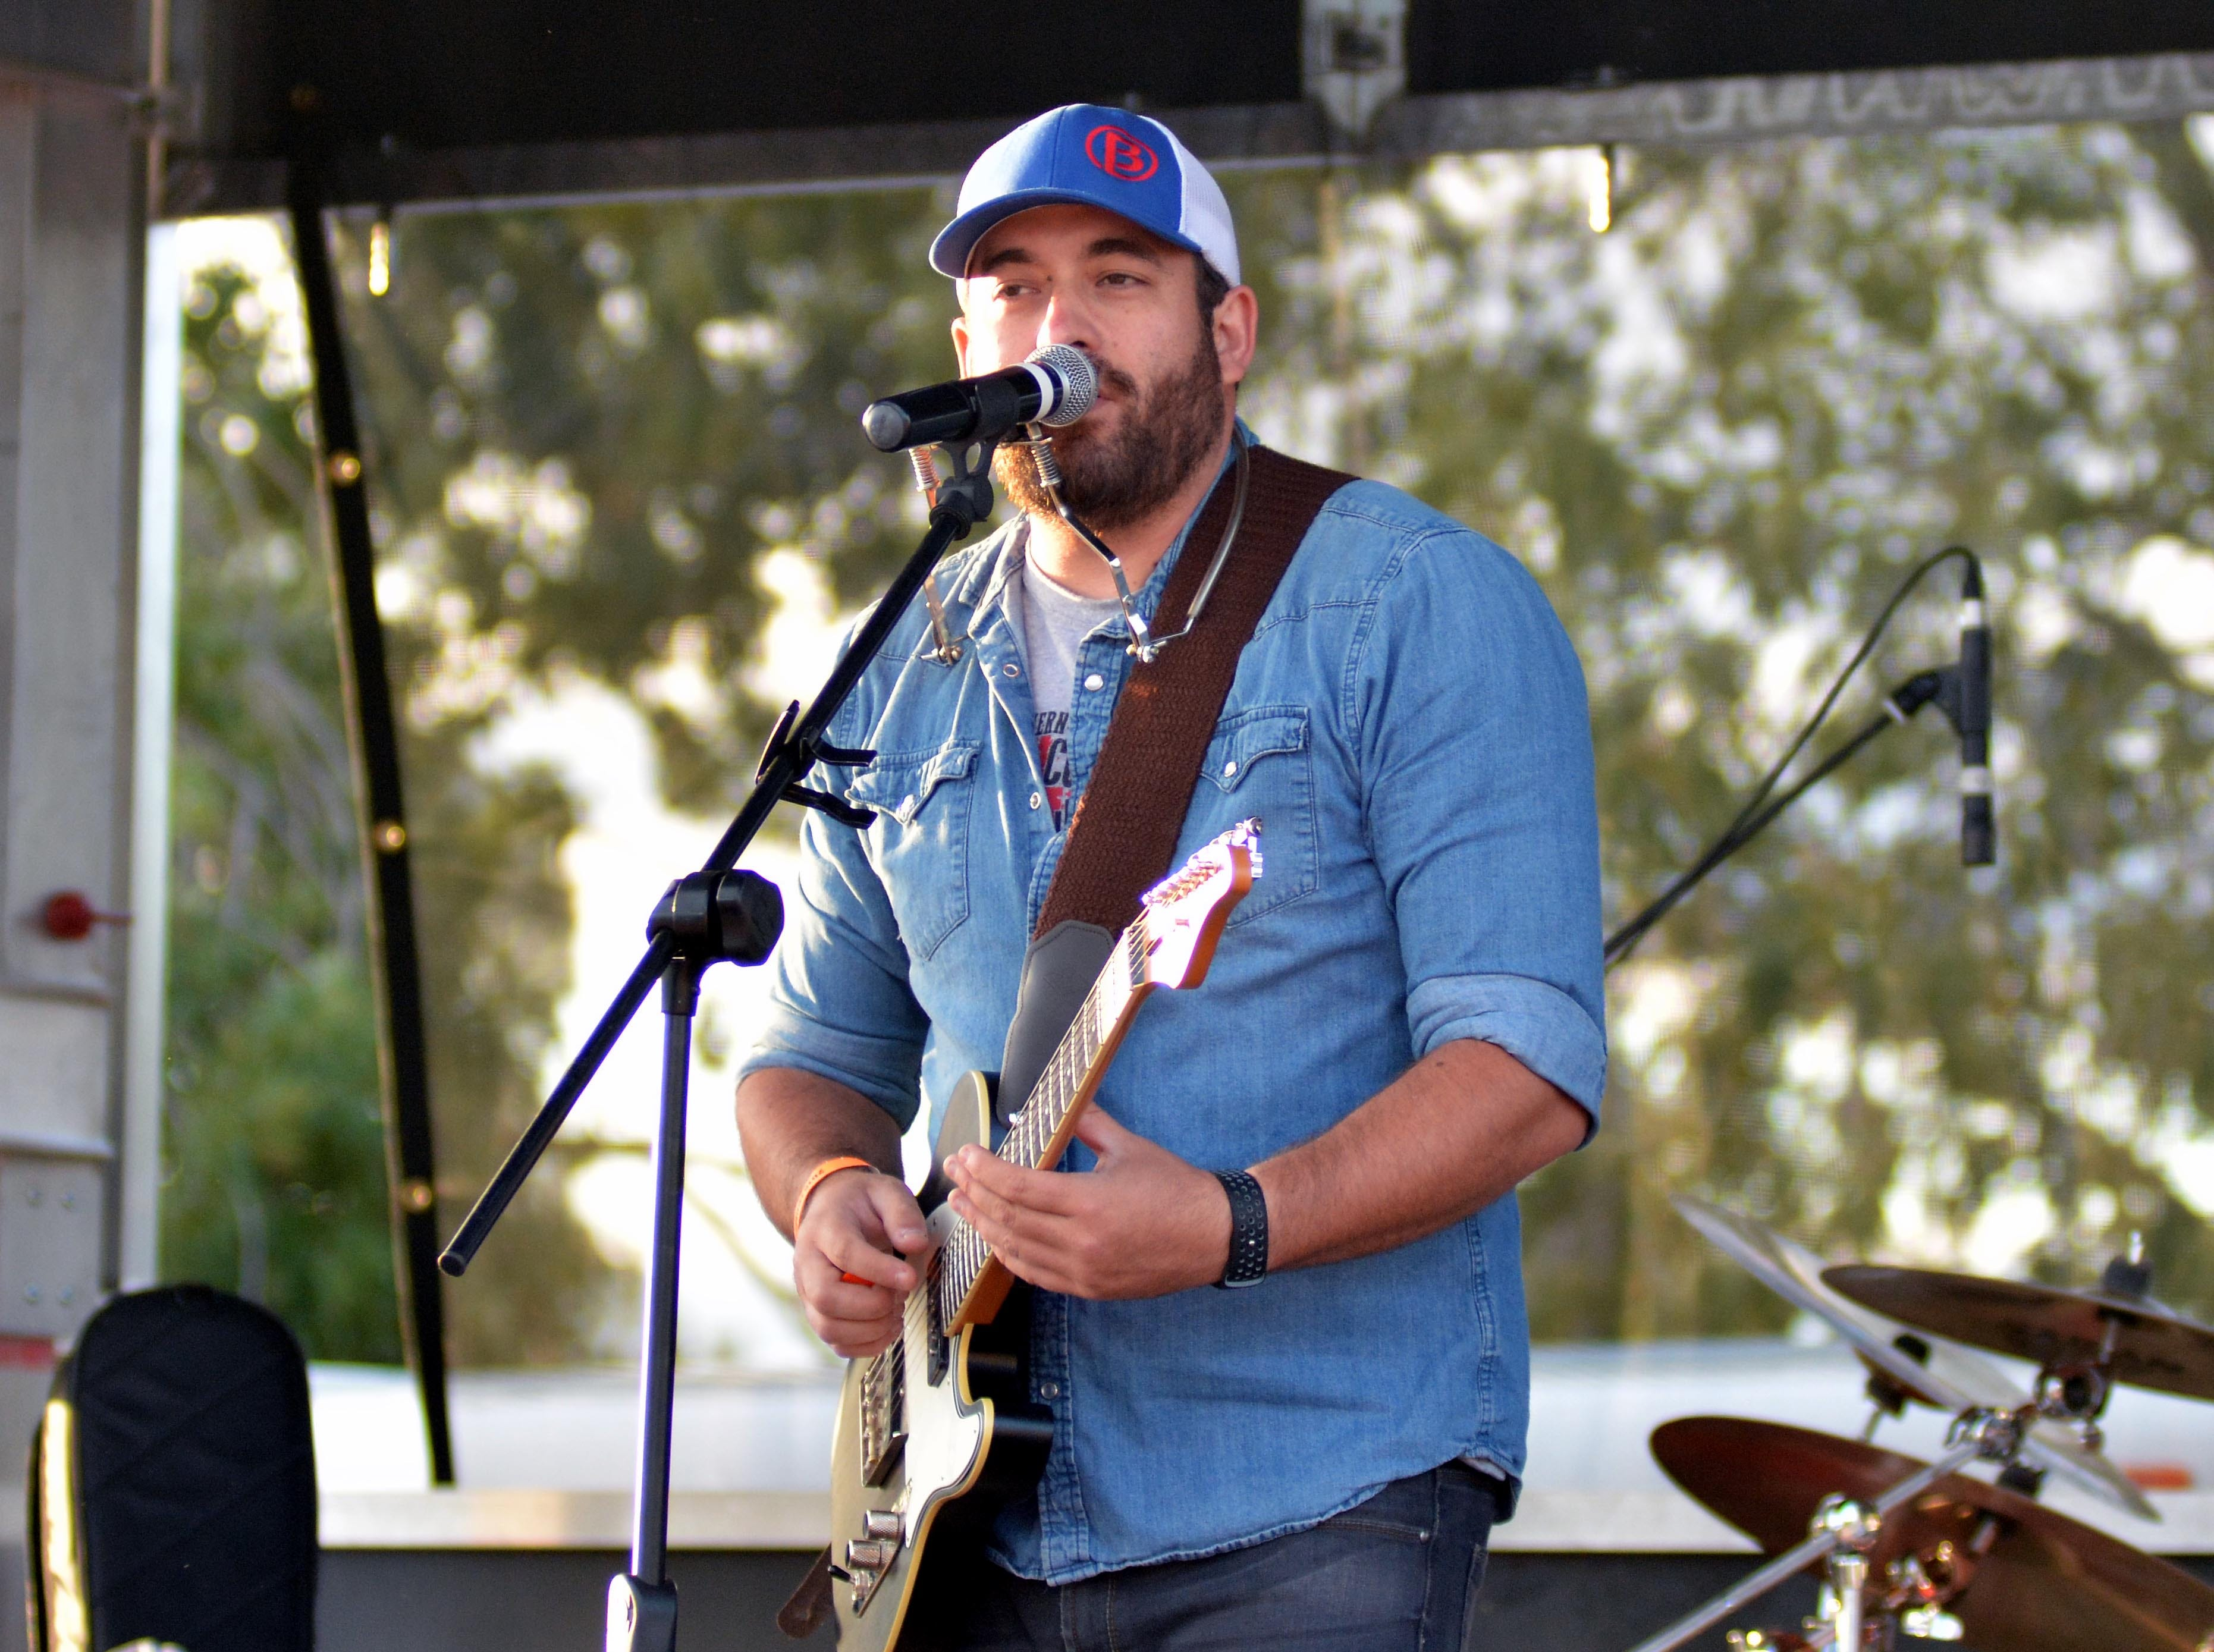 Chris Baker, of Las Cruces, performs at the Las Cruces Country Music Festival on Saturday, Oct. 20, 2018.